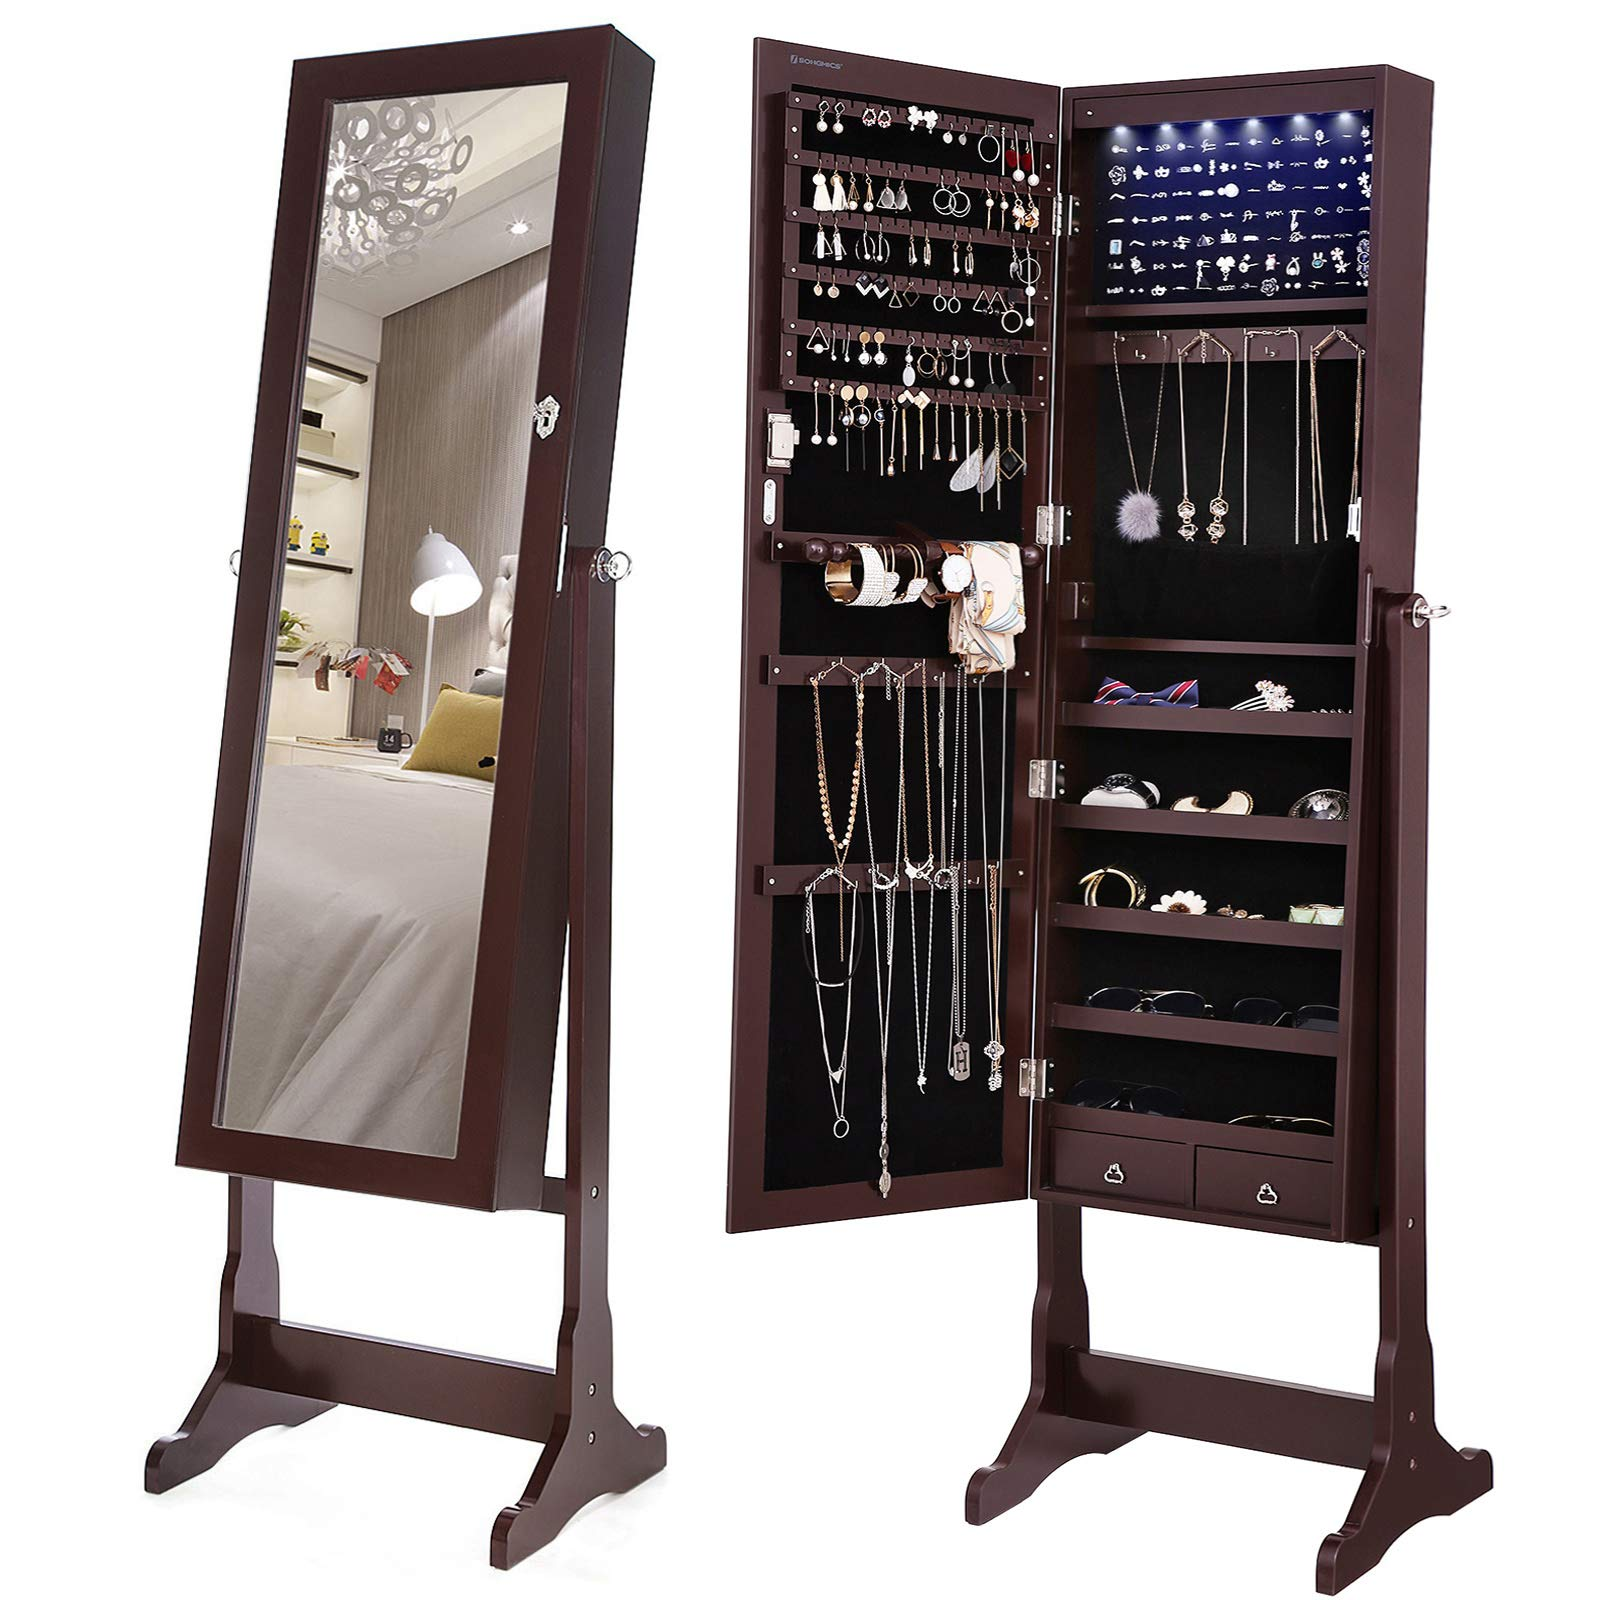 SONGMICS 6 LEDs Mirror Jewelry Cabinet Lockable Standing Mirrored Jewelry Armoire Organizer 2 Drawers Brown Mother's Day Gift UJJC94K